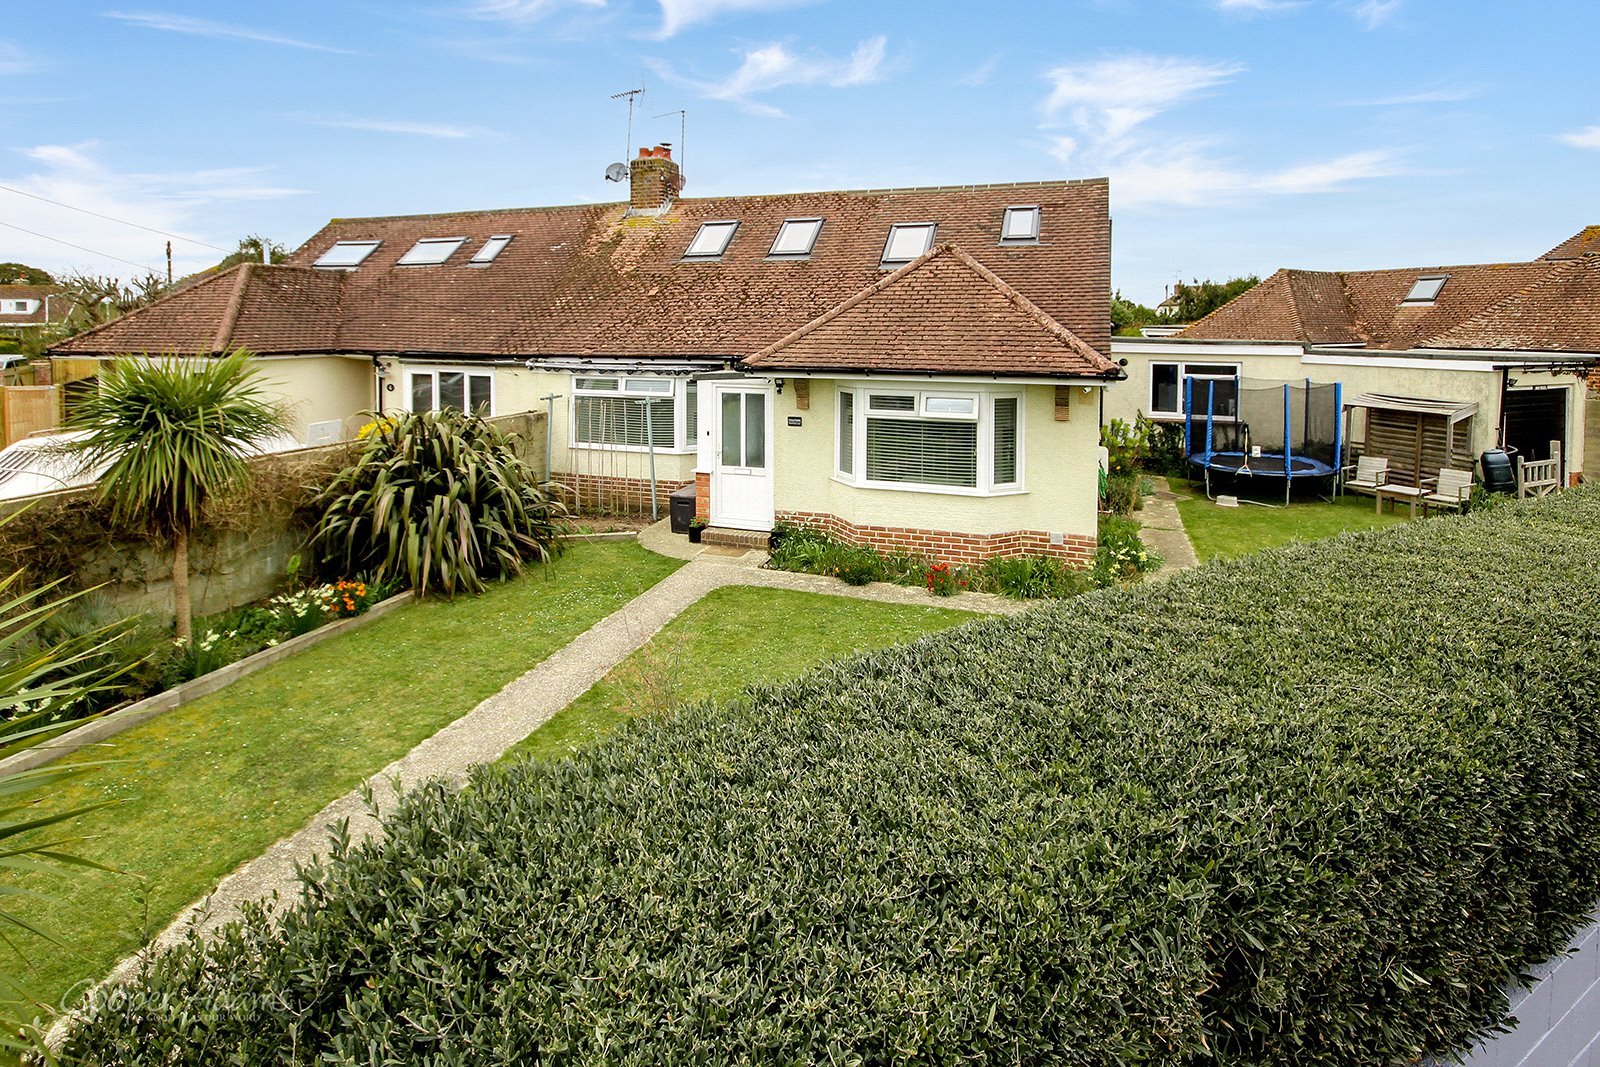 5 bed bungalow for sale in Normandy Lane, East Preston, BN16